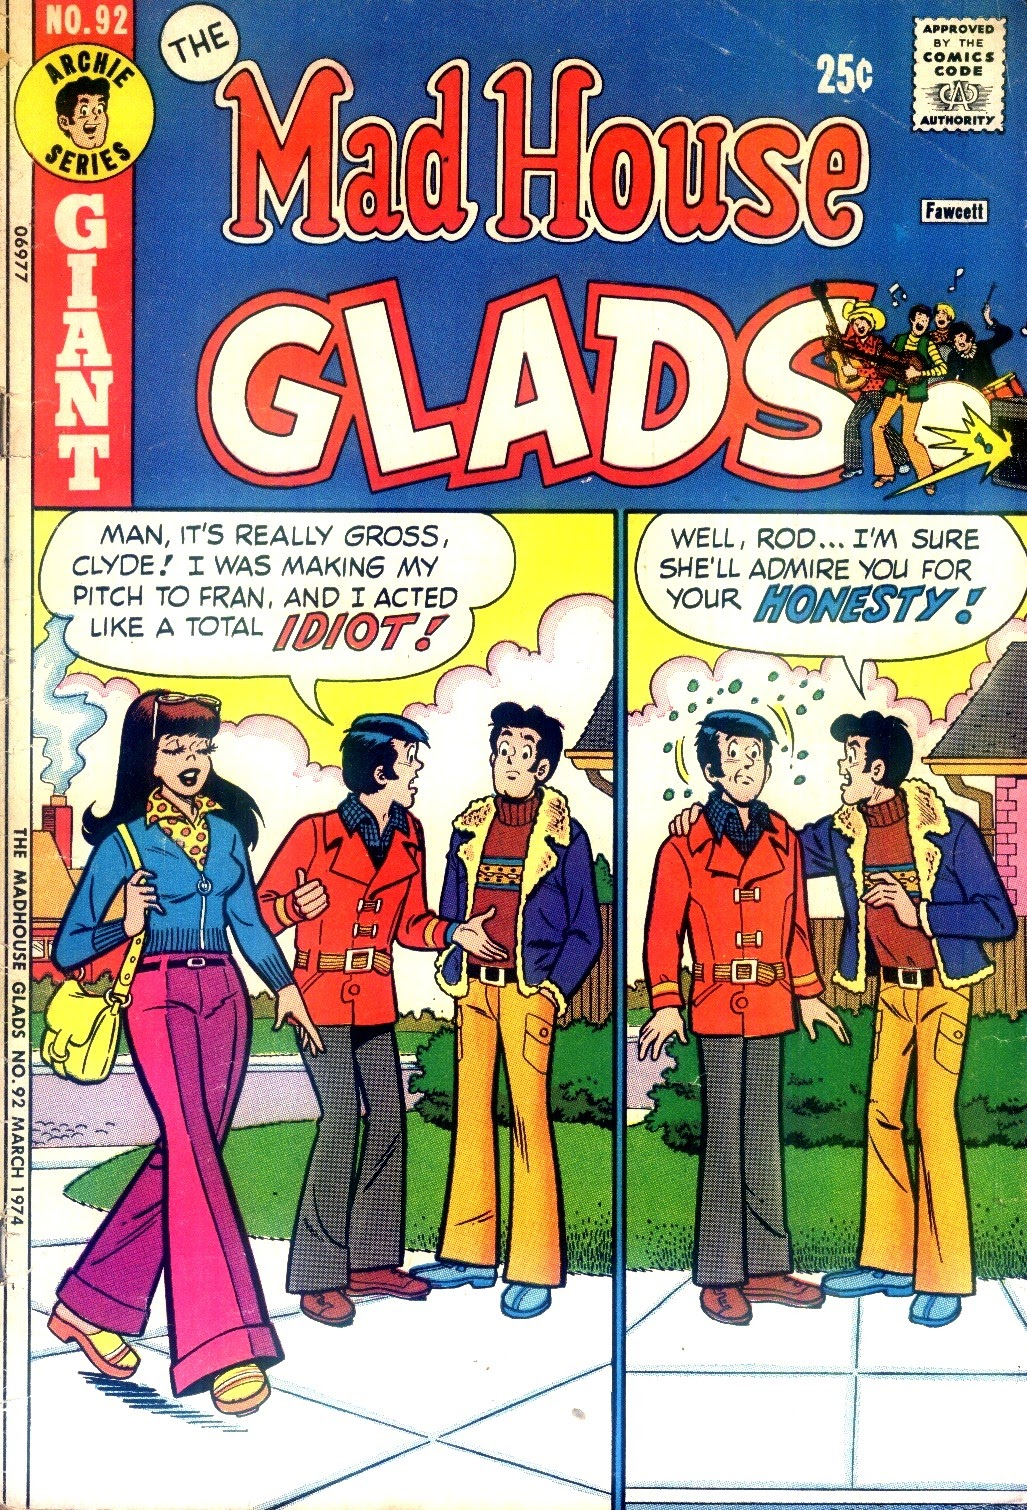 Read online The Mad House Glads comic -  Issue #92 - 1